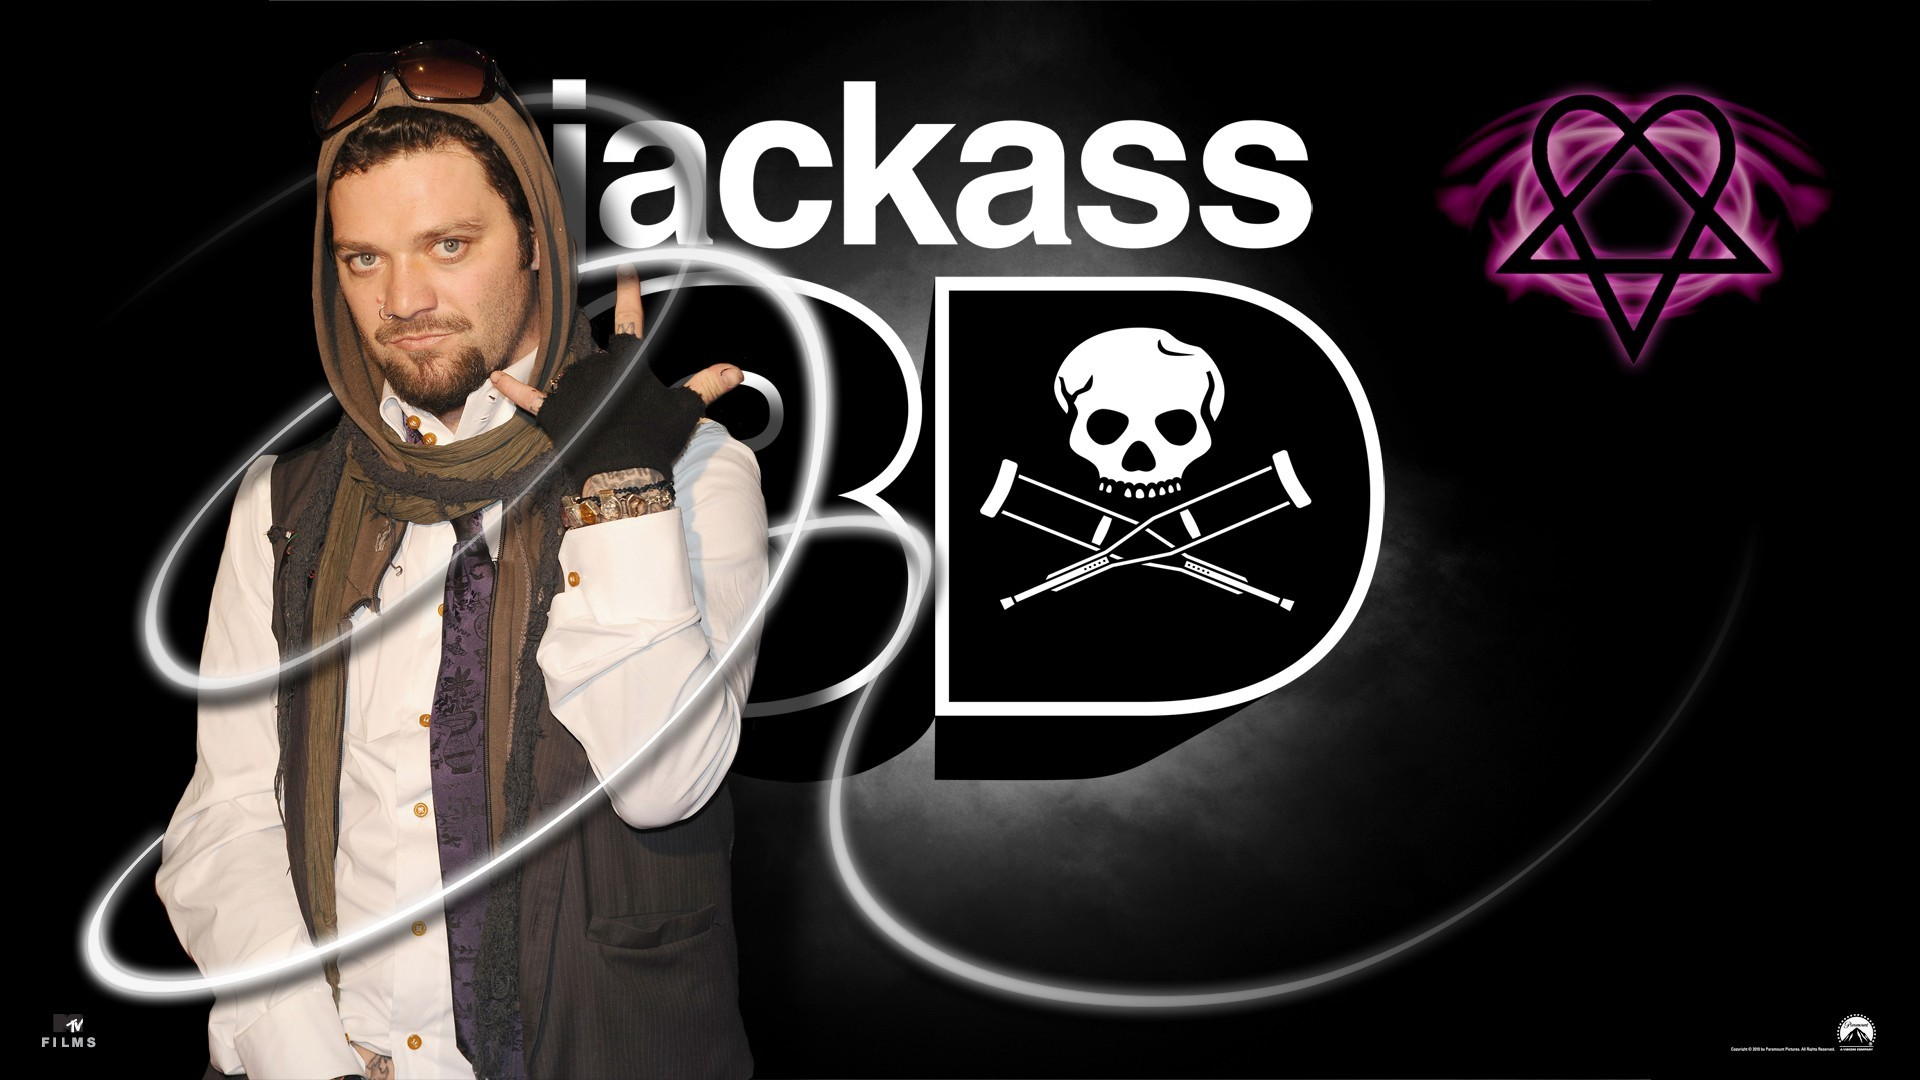 H.I.M Bam Margera Jackass HD Wallpaper